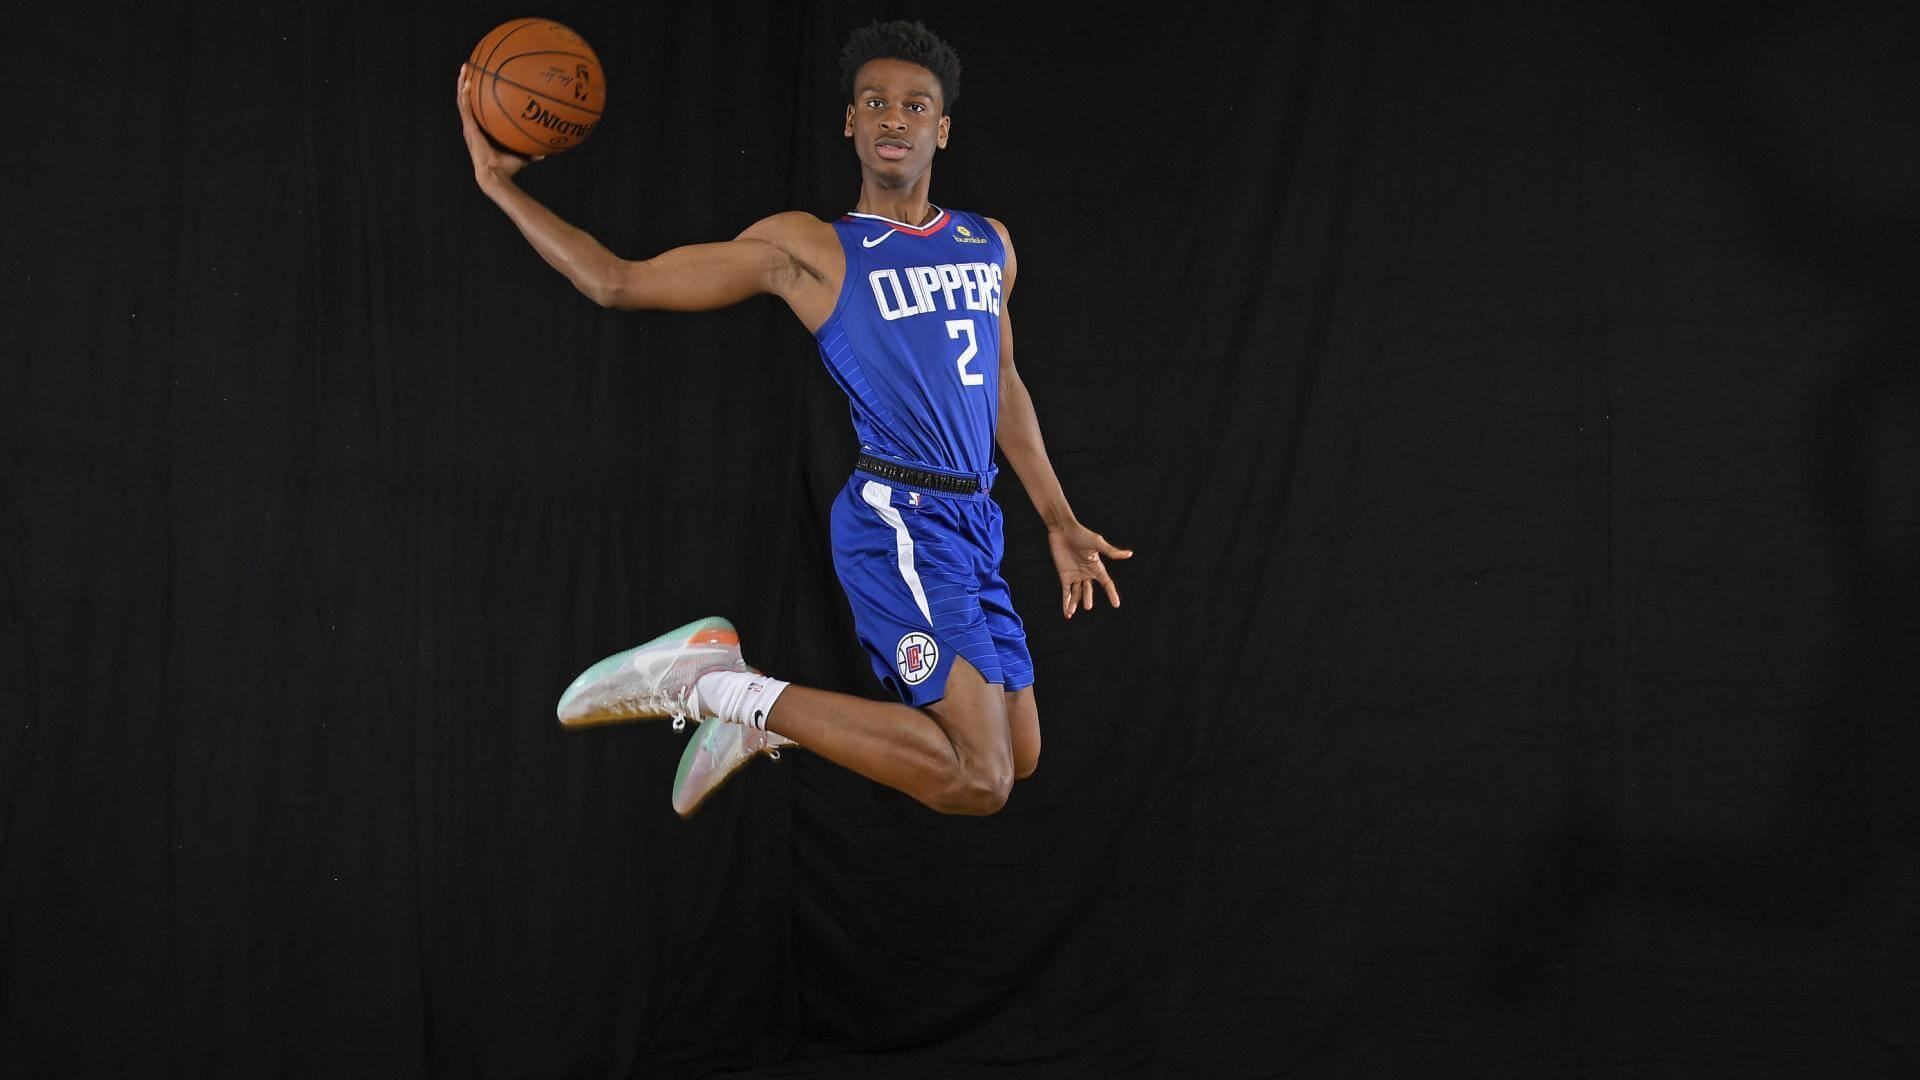 LOOK: The Best Of The 2018 NBA Rookie Photo Shoot